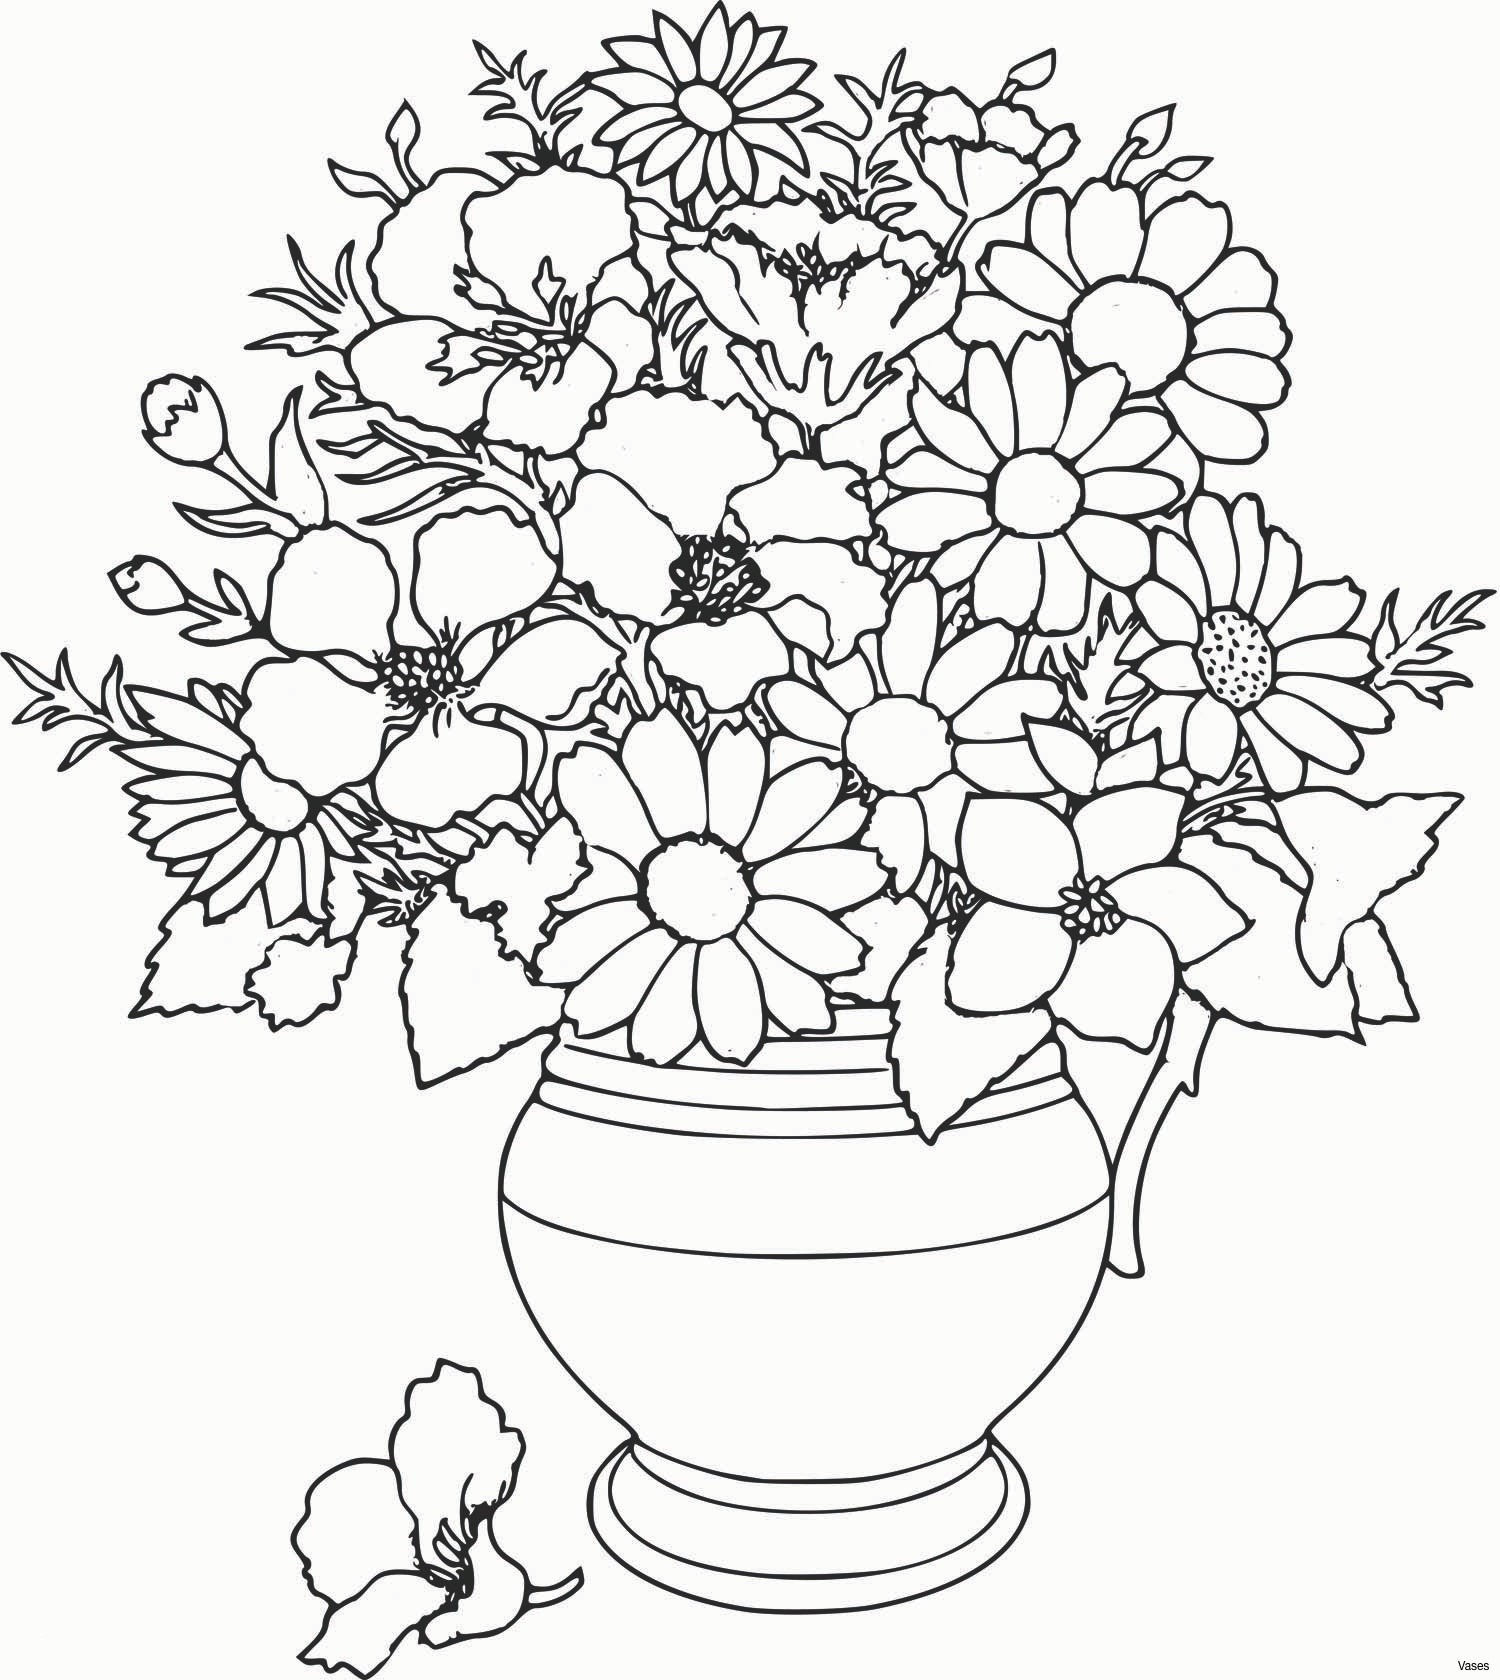 coloring pages hawaiian flowers Collection-Hawaiian Flower Coloring Page Kids Flower Coloring Pages Beautiful Best Coloring Page Adult Od 19-a